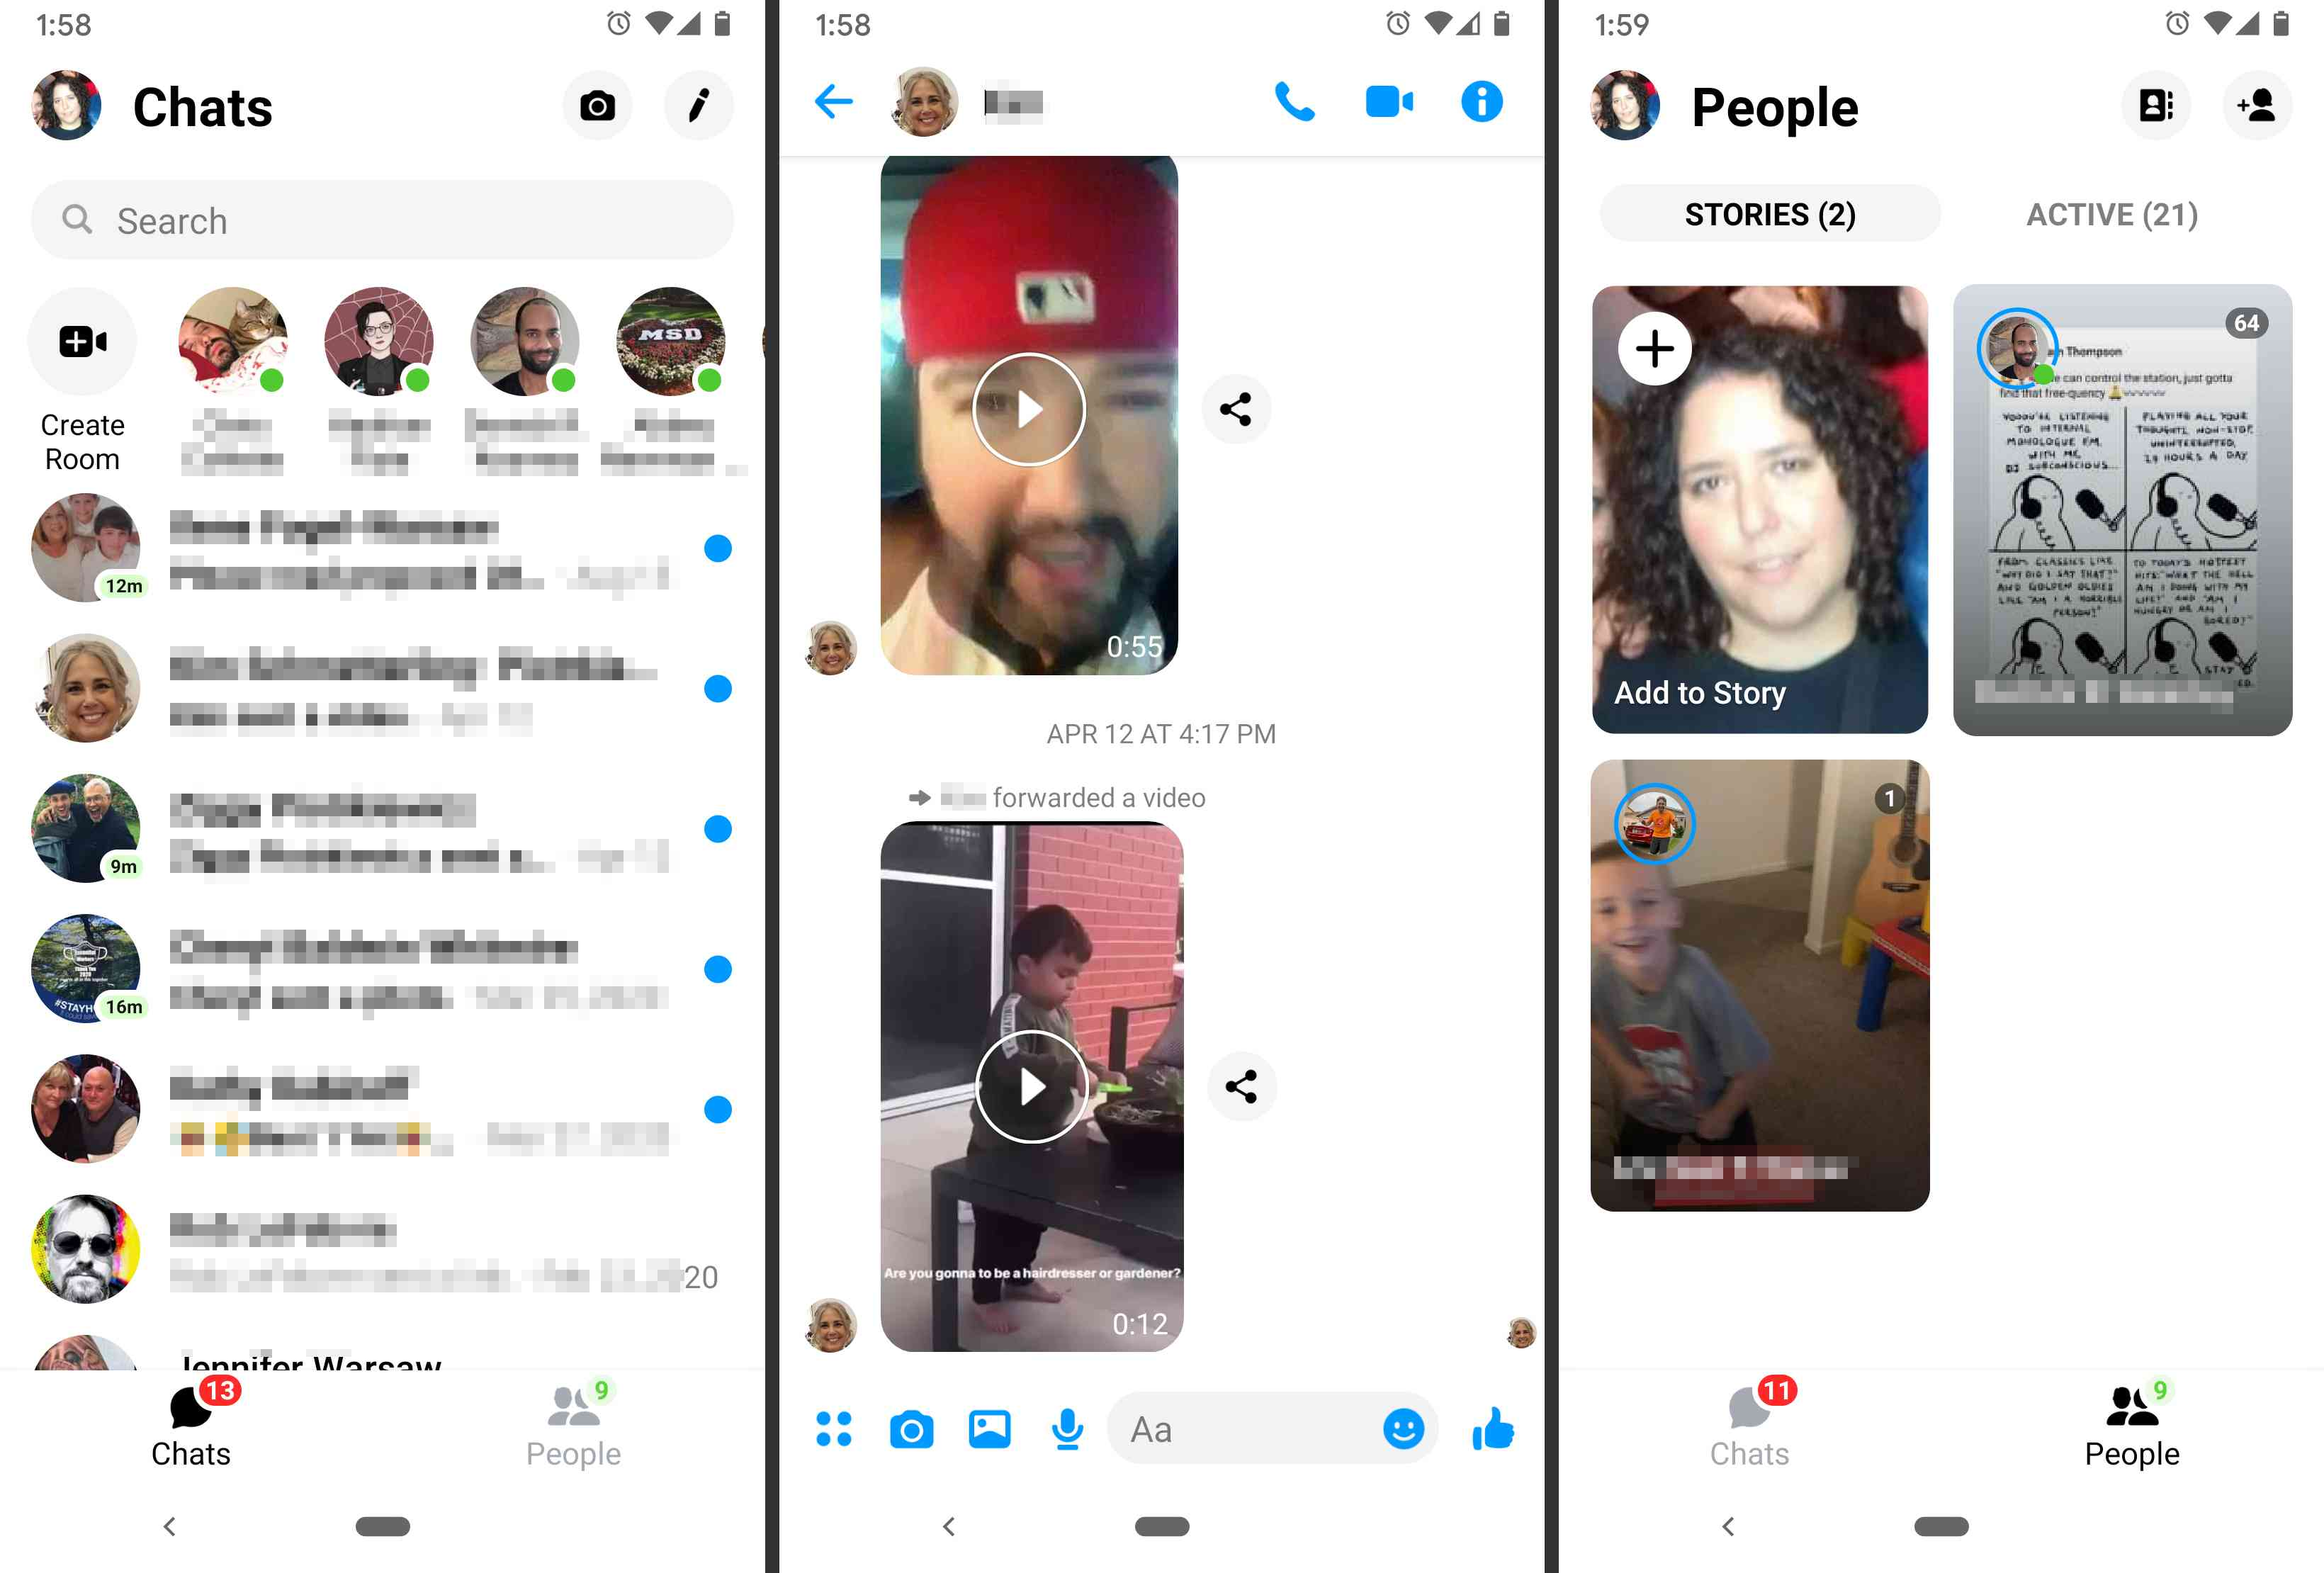 Facebook Messenger lets you stay in touch with your contacts on the social network.